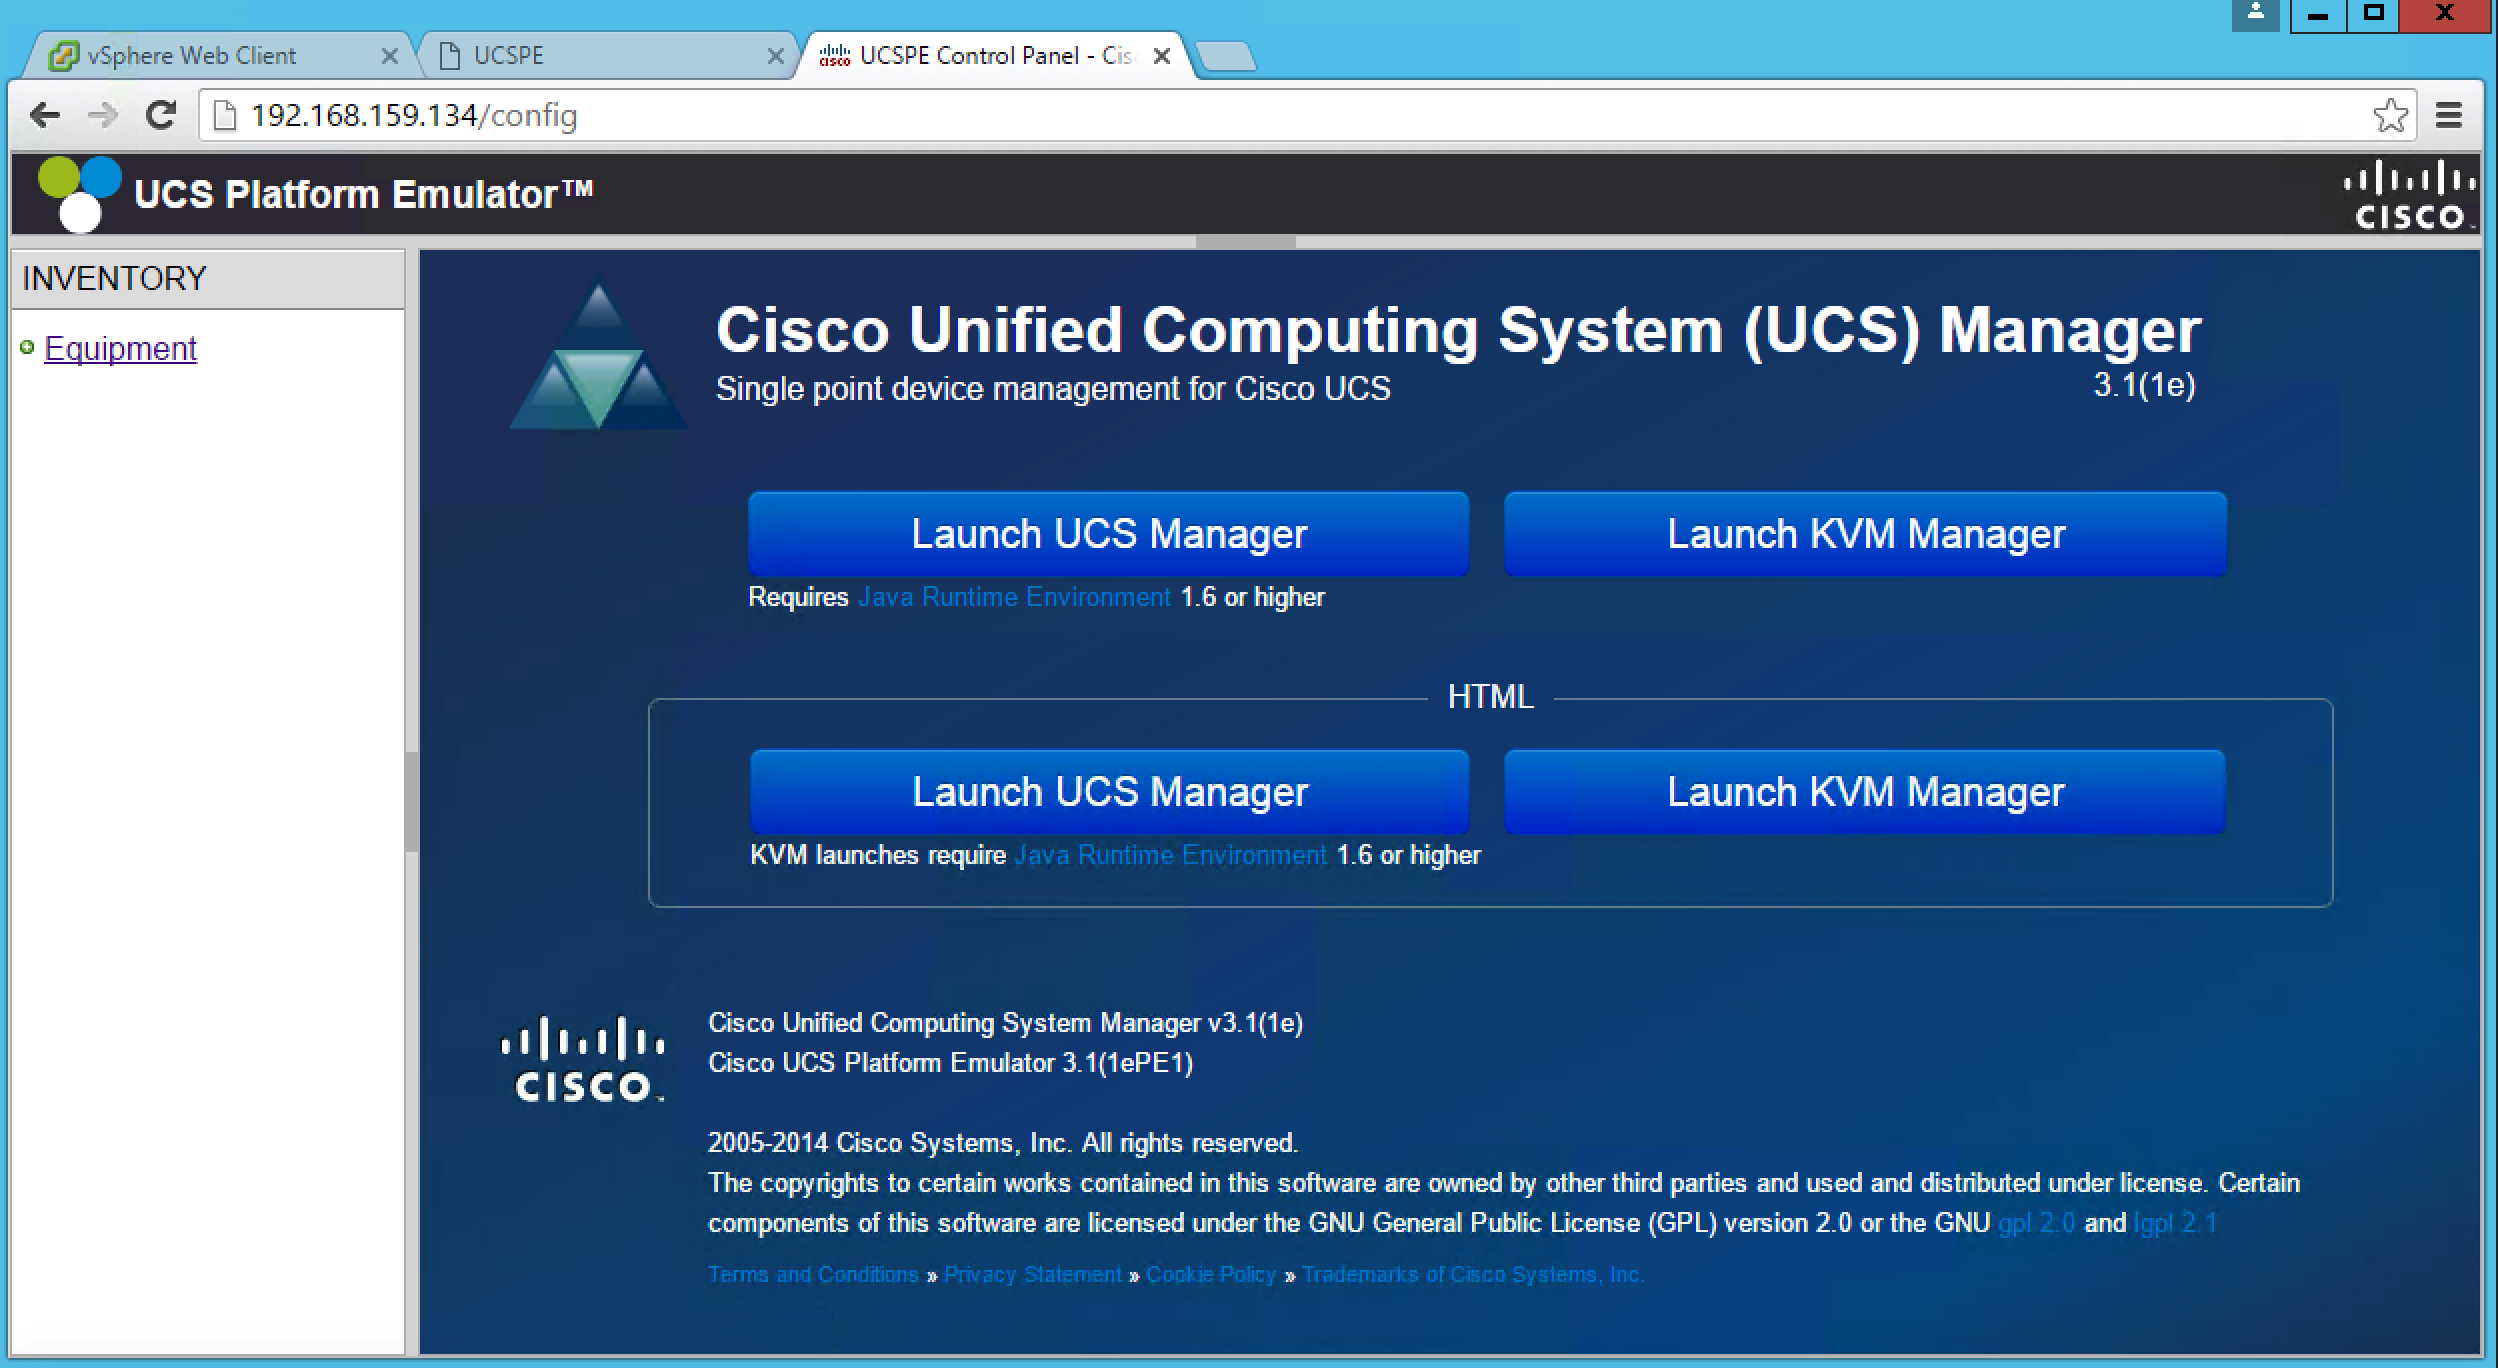 Using Cisco UCSPE - Implementing Cisco UCS Solutions